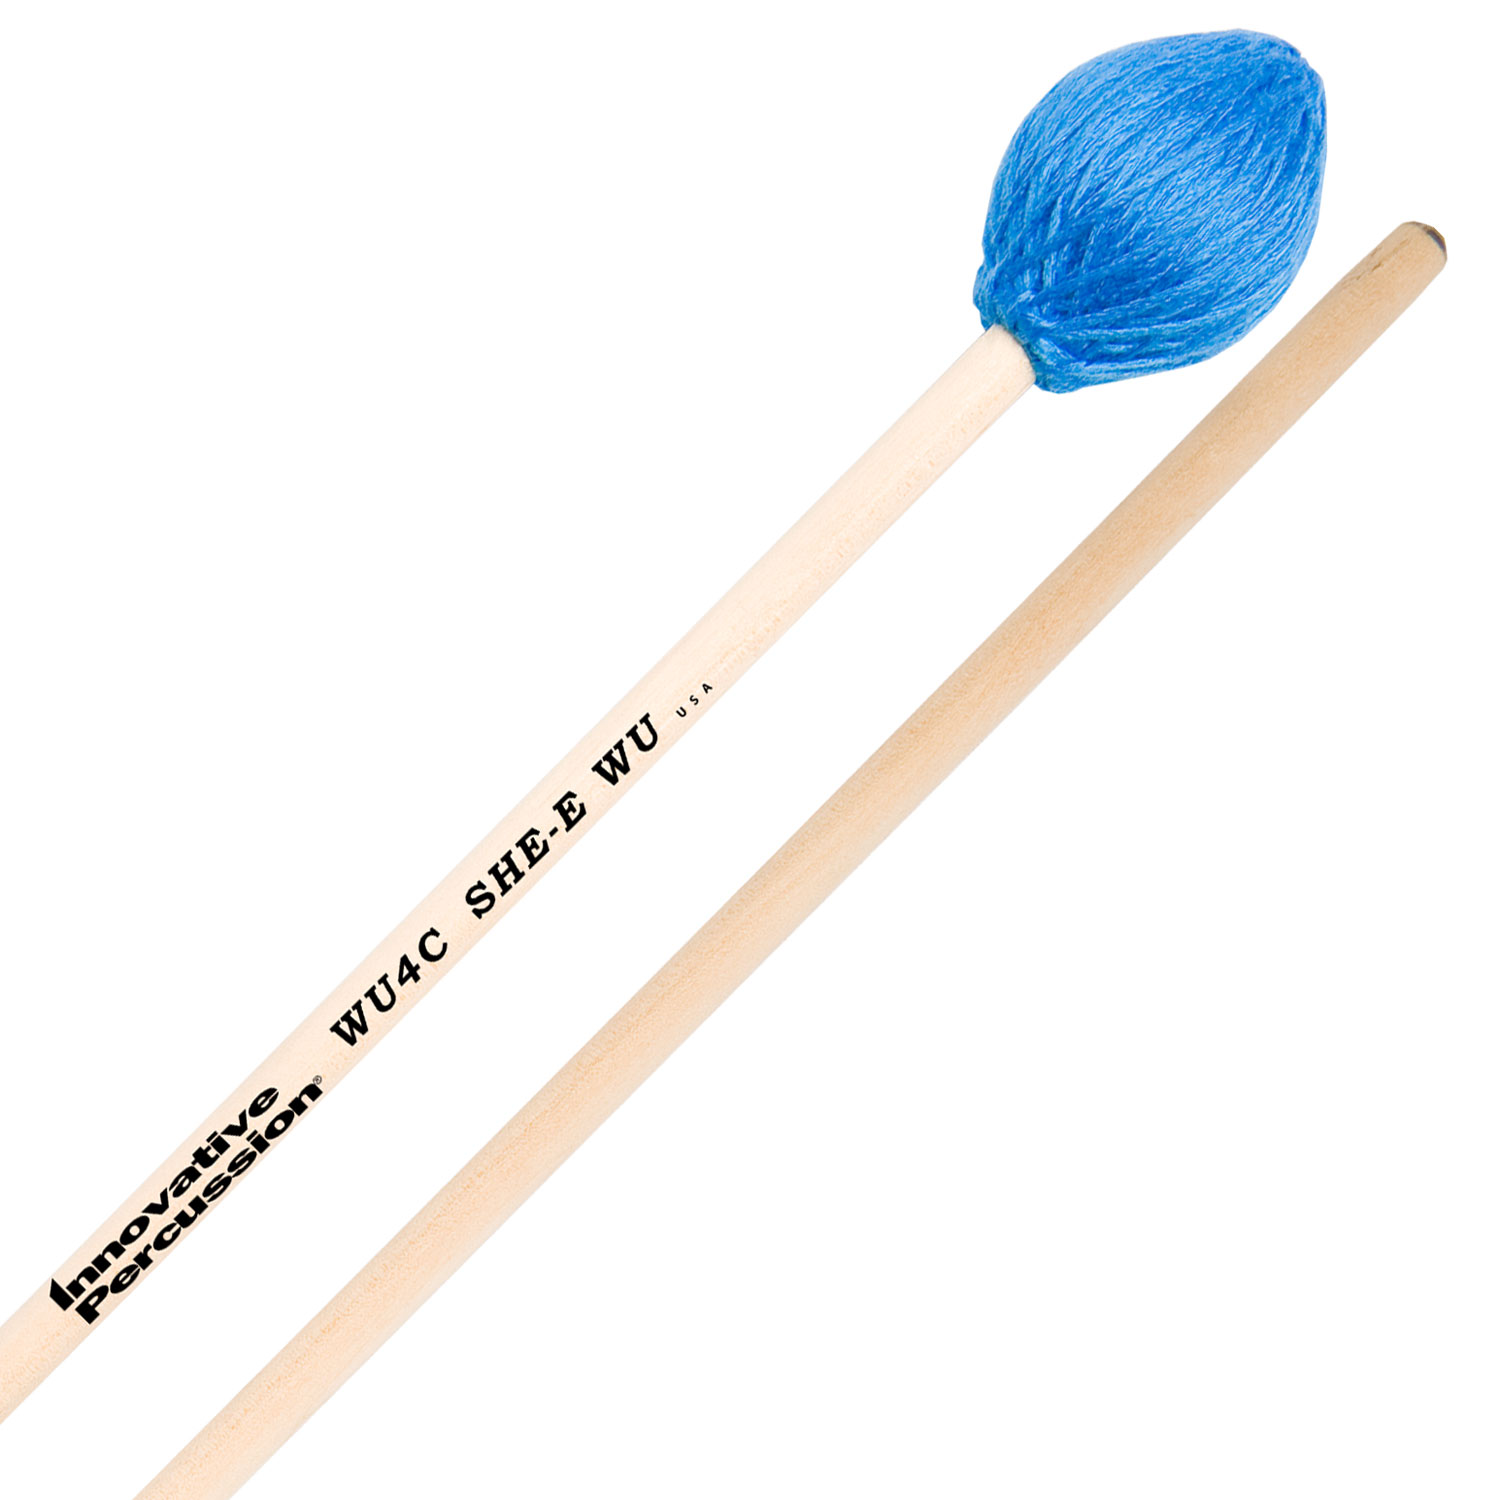 Innovative Percussion She-e Wu Signature Medium Hard Concerto Marimba Mallets